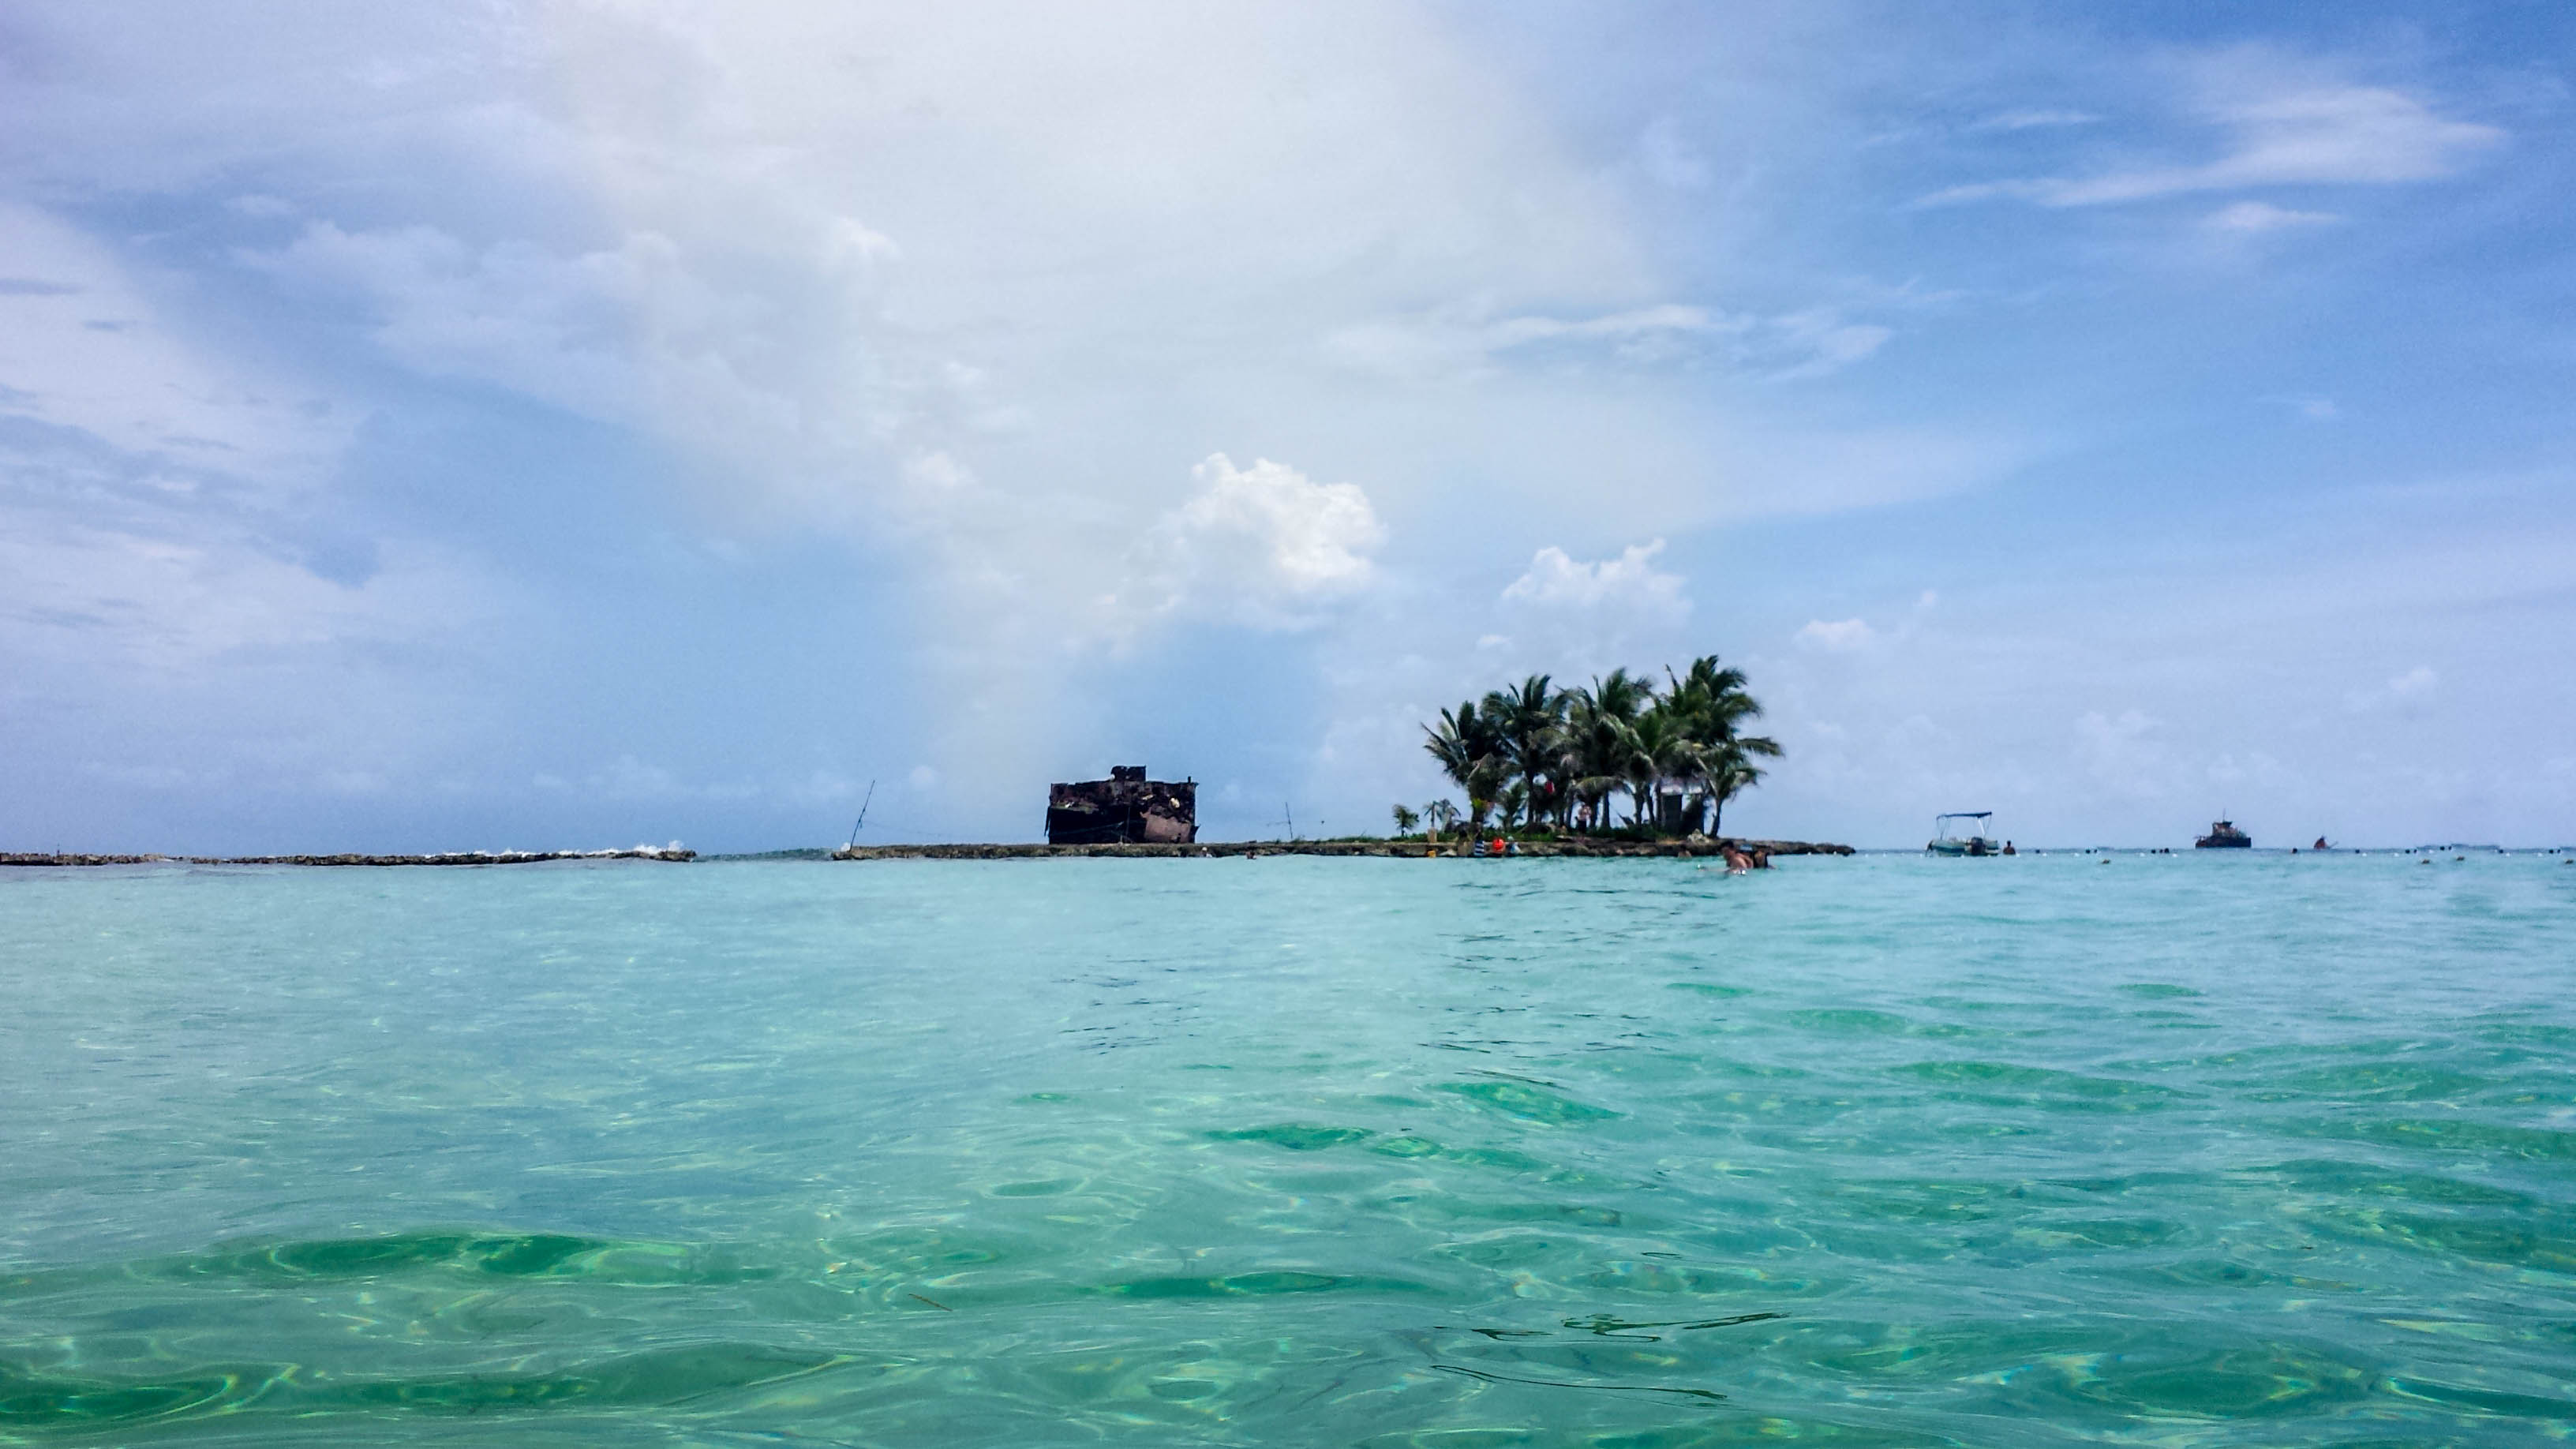 The islands of San Andres and Providencia are located right in the middle of the Caribbean Sea. Because of their location, fauna and flora are unique in this part of the world.